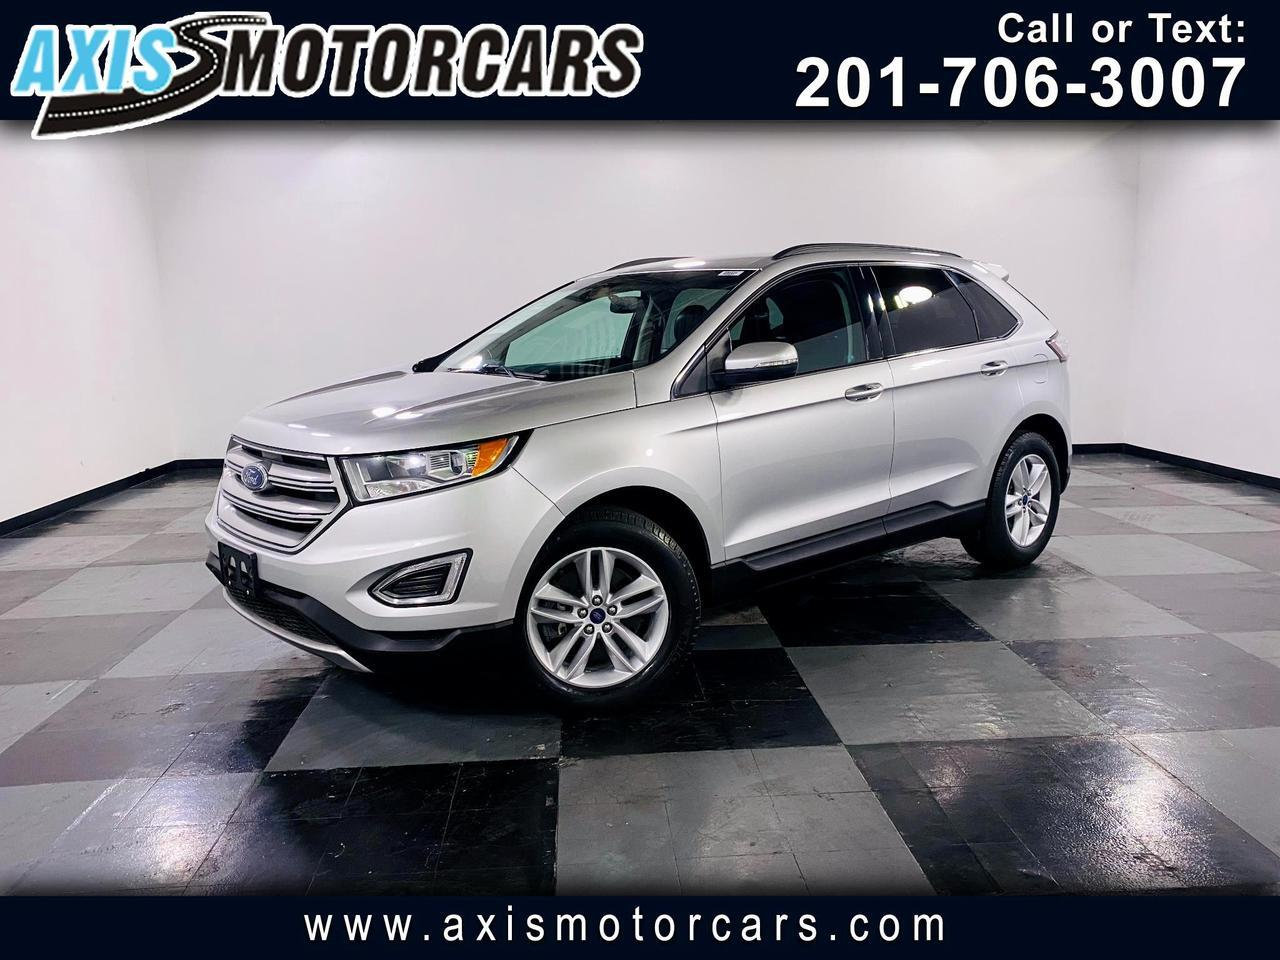 2015 Ford Edge 4dr SEL AWD w/Backup Camera Jersey City NJ